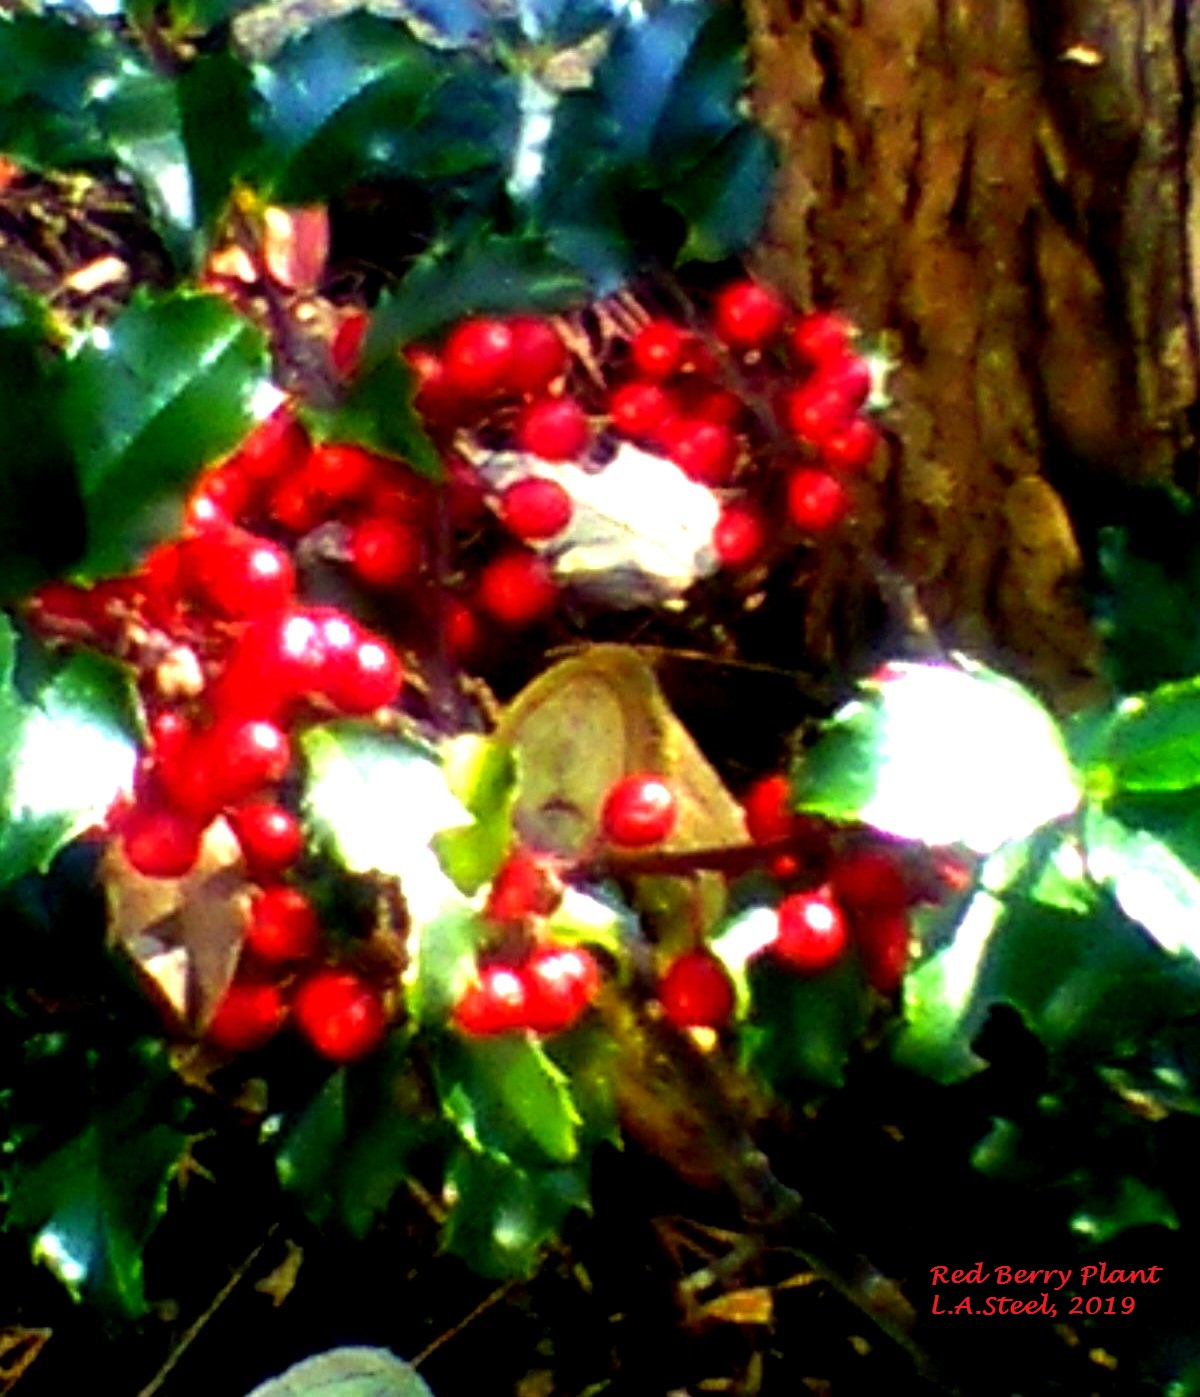 red berry plant 2019